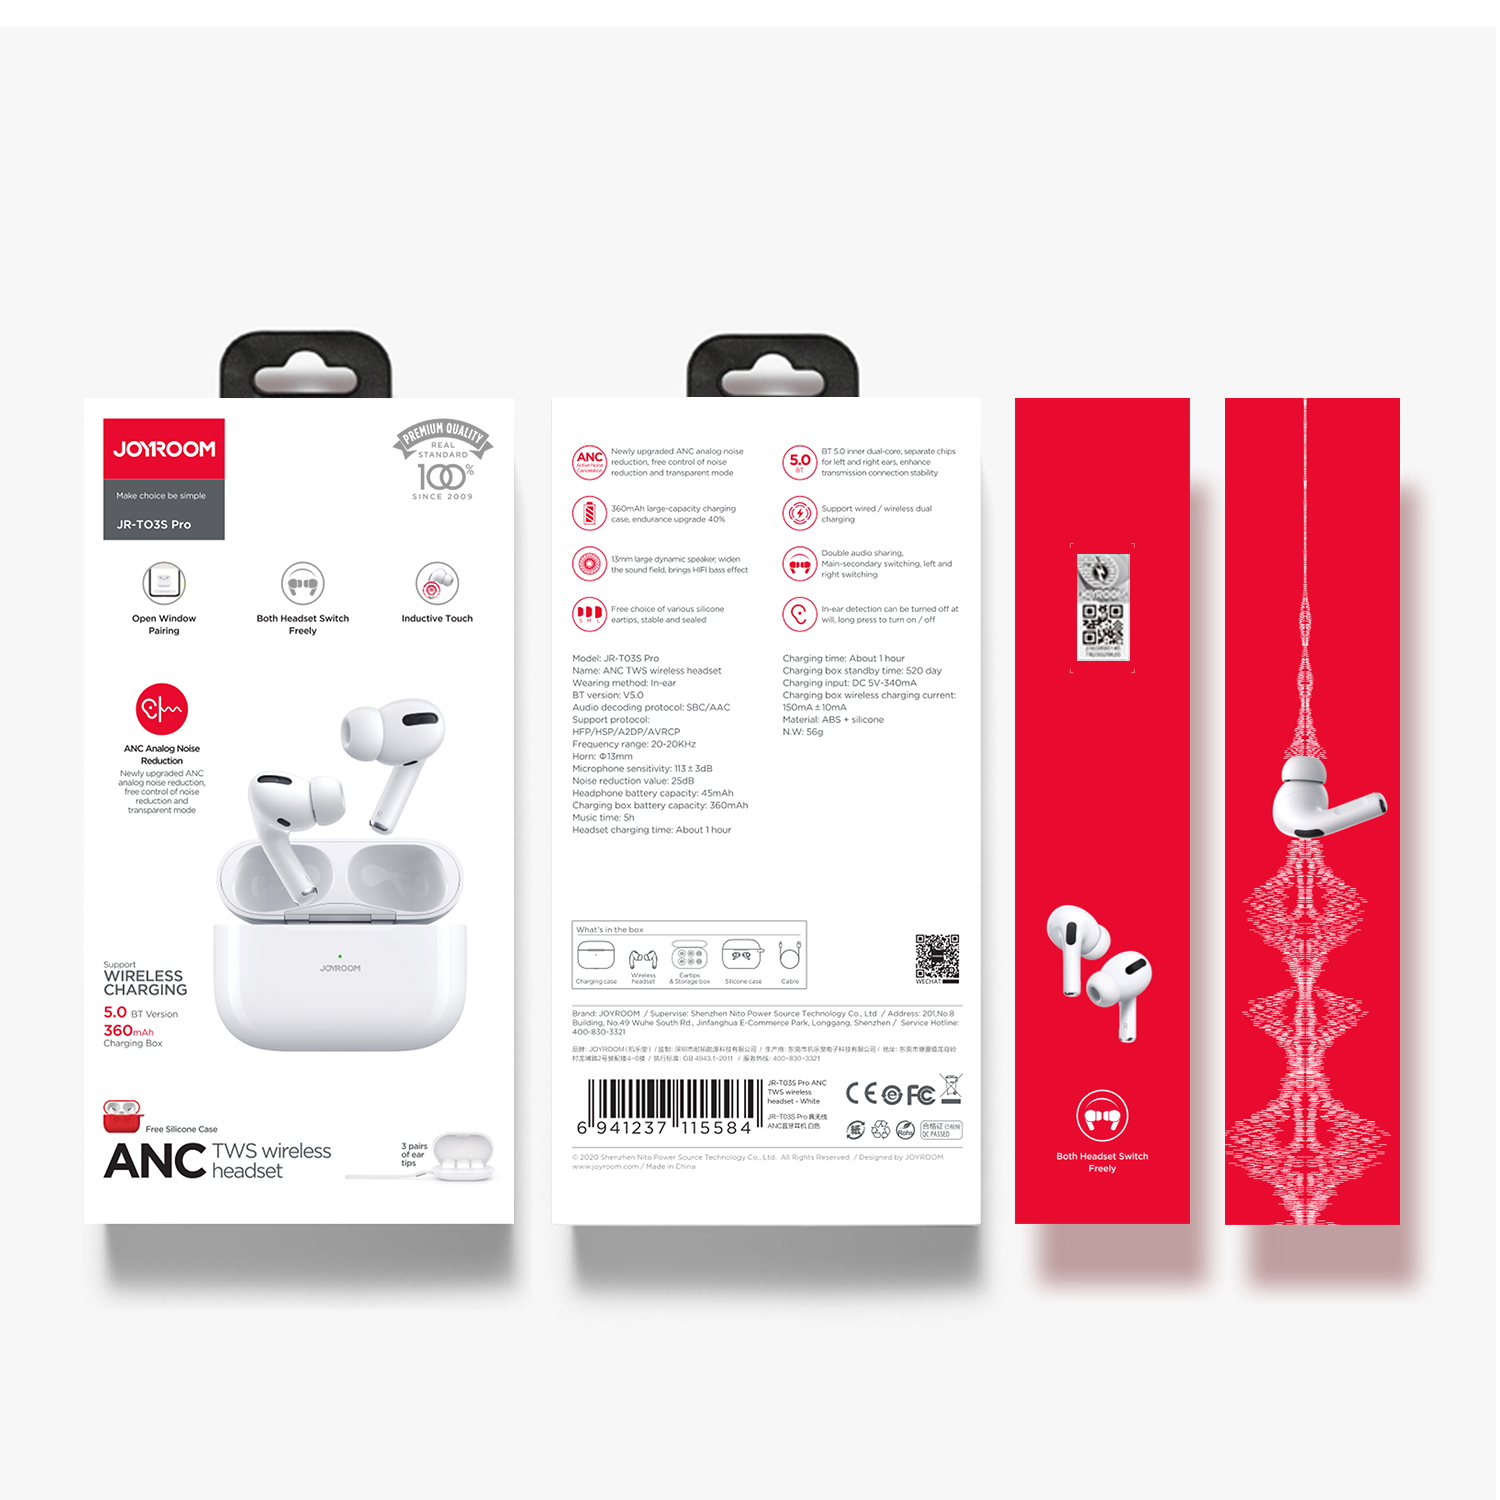 Joyroom High Quality T03S Pro Earbuds ANC TWS Wireless Earbuds Bluetooth Active noise cancelling Earphones Reduction Earphone - idealBuds Earphone | idealBuds.net